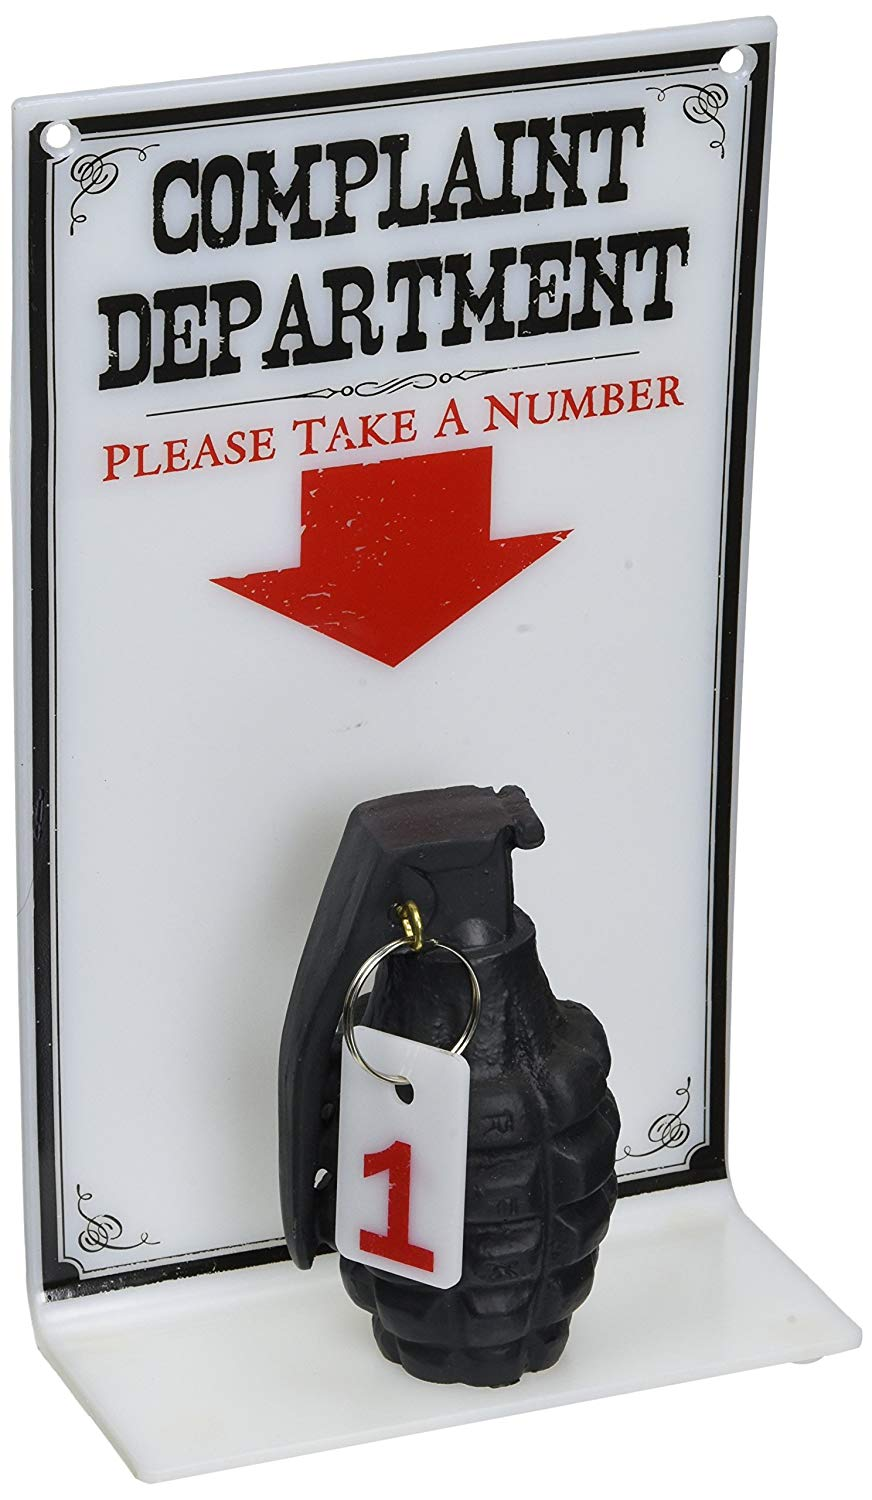 Complaint Department Grenade Sign 10